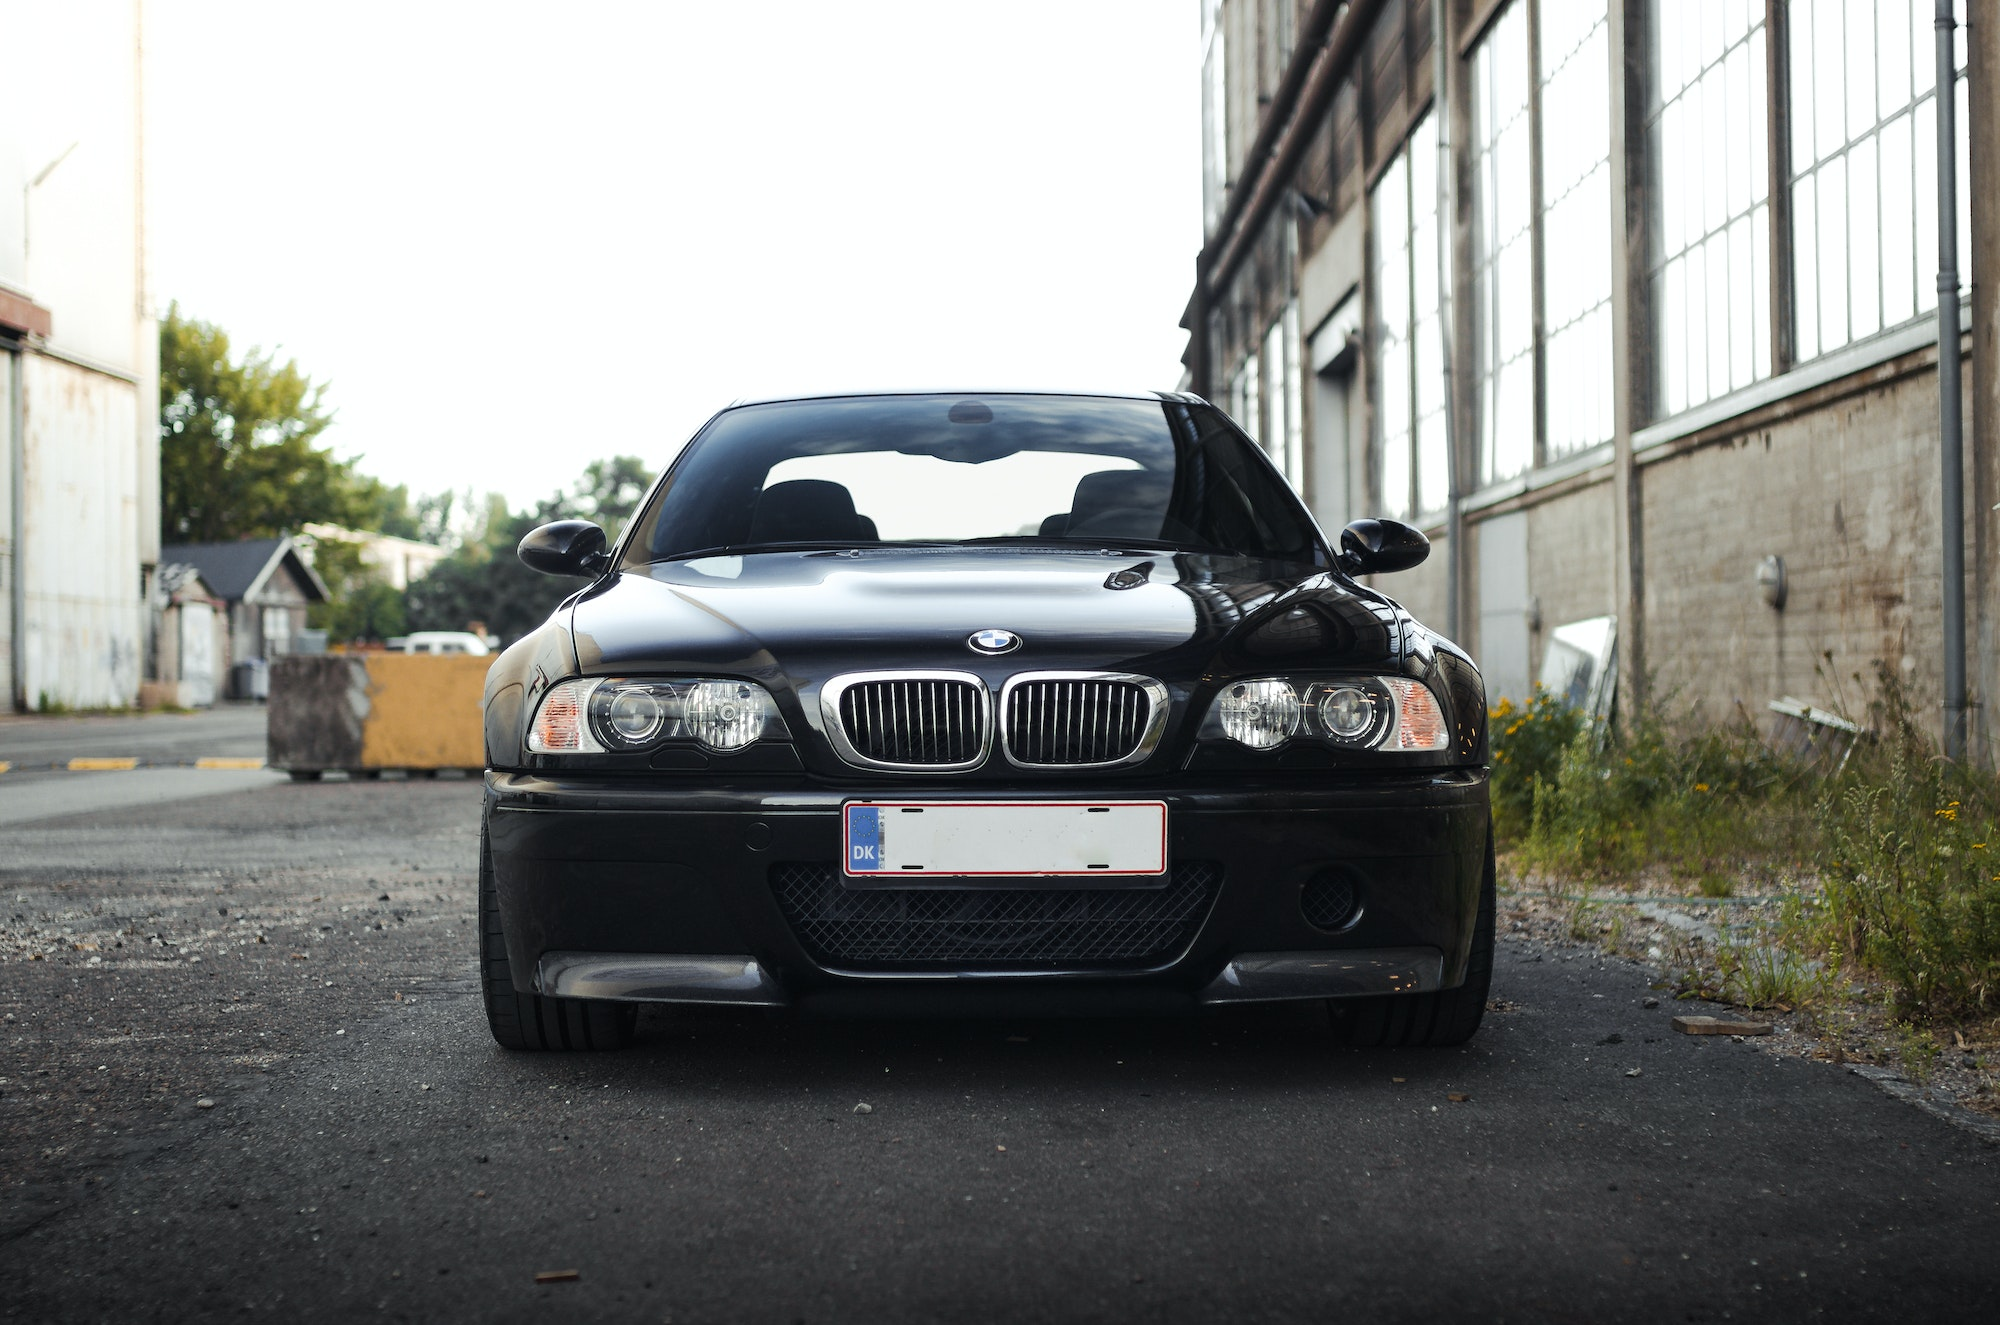 Reserve Lowered 2003 Bmw E46 M3 Csl Lhd